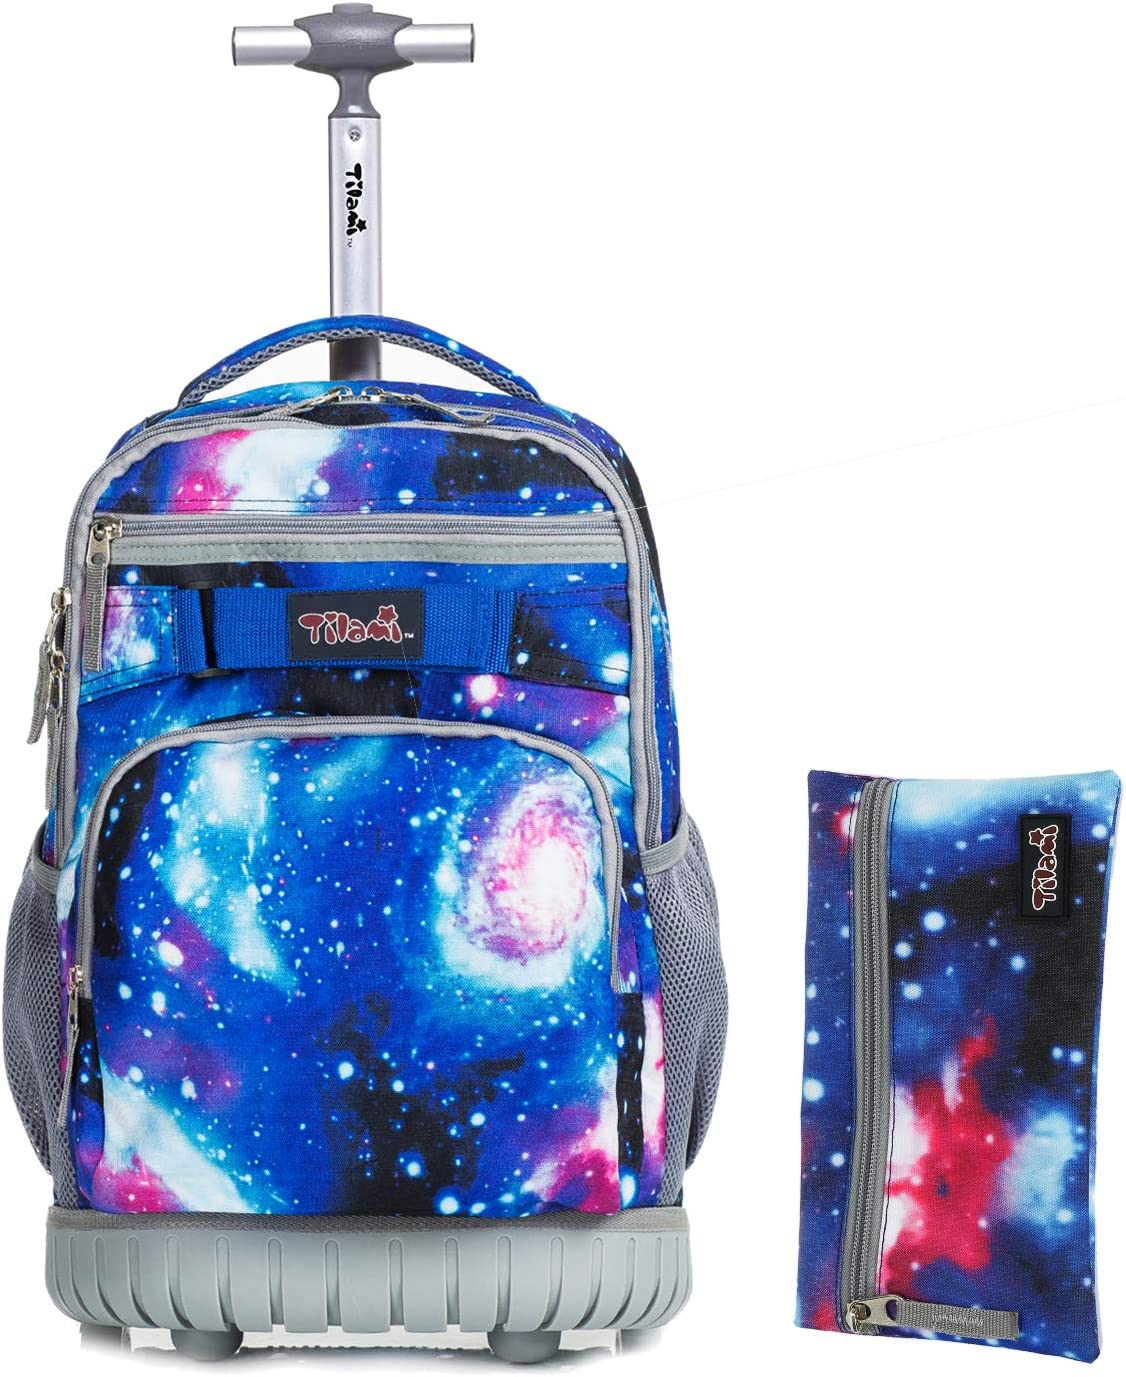 Tilami Rolling Backpack 18 inch with Pencil Case Wheeled Laptop Bag, Galaxy